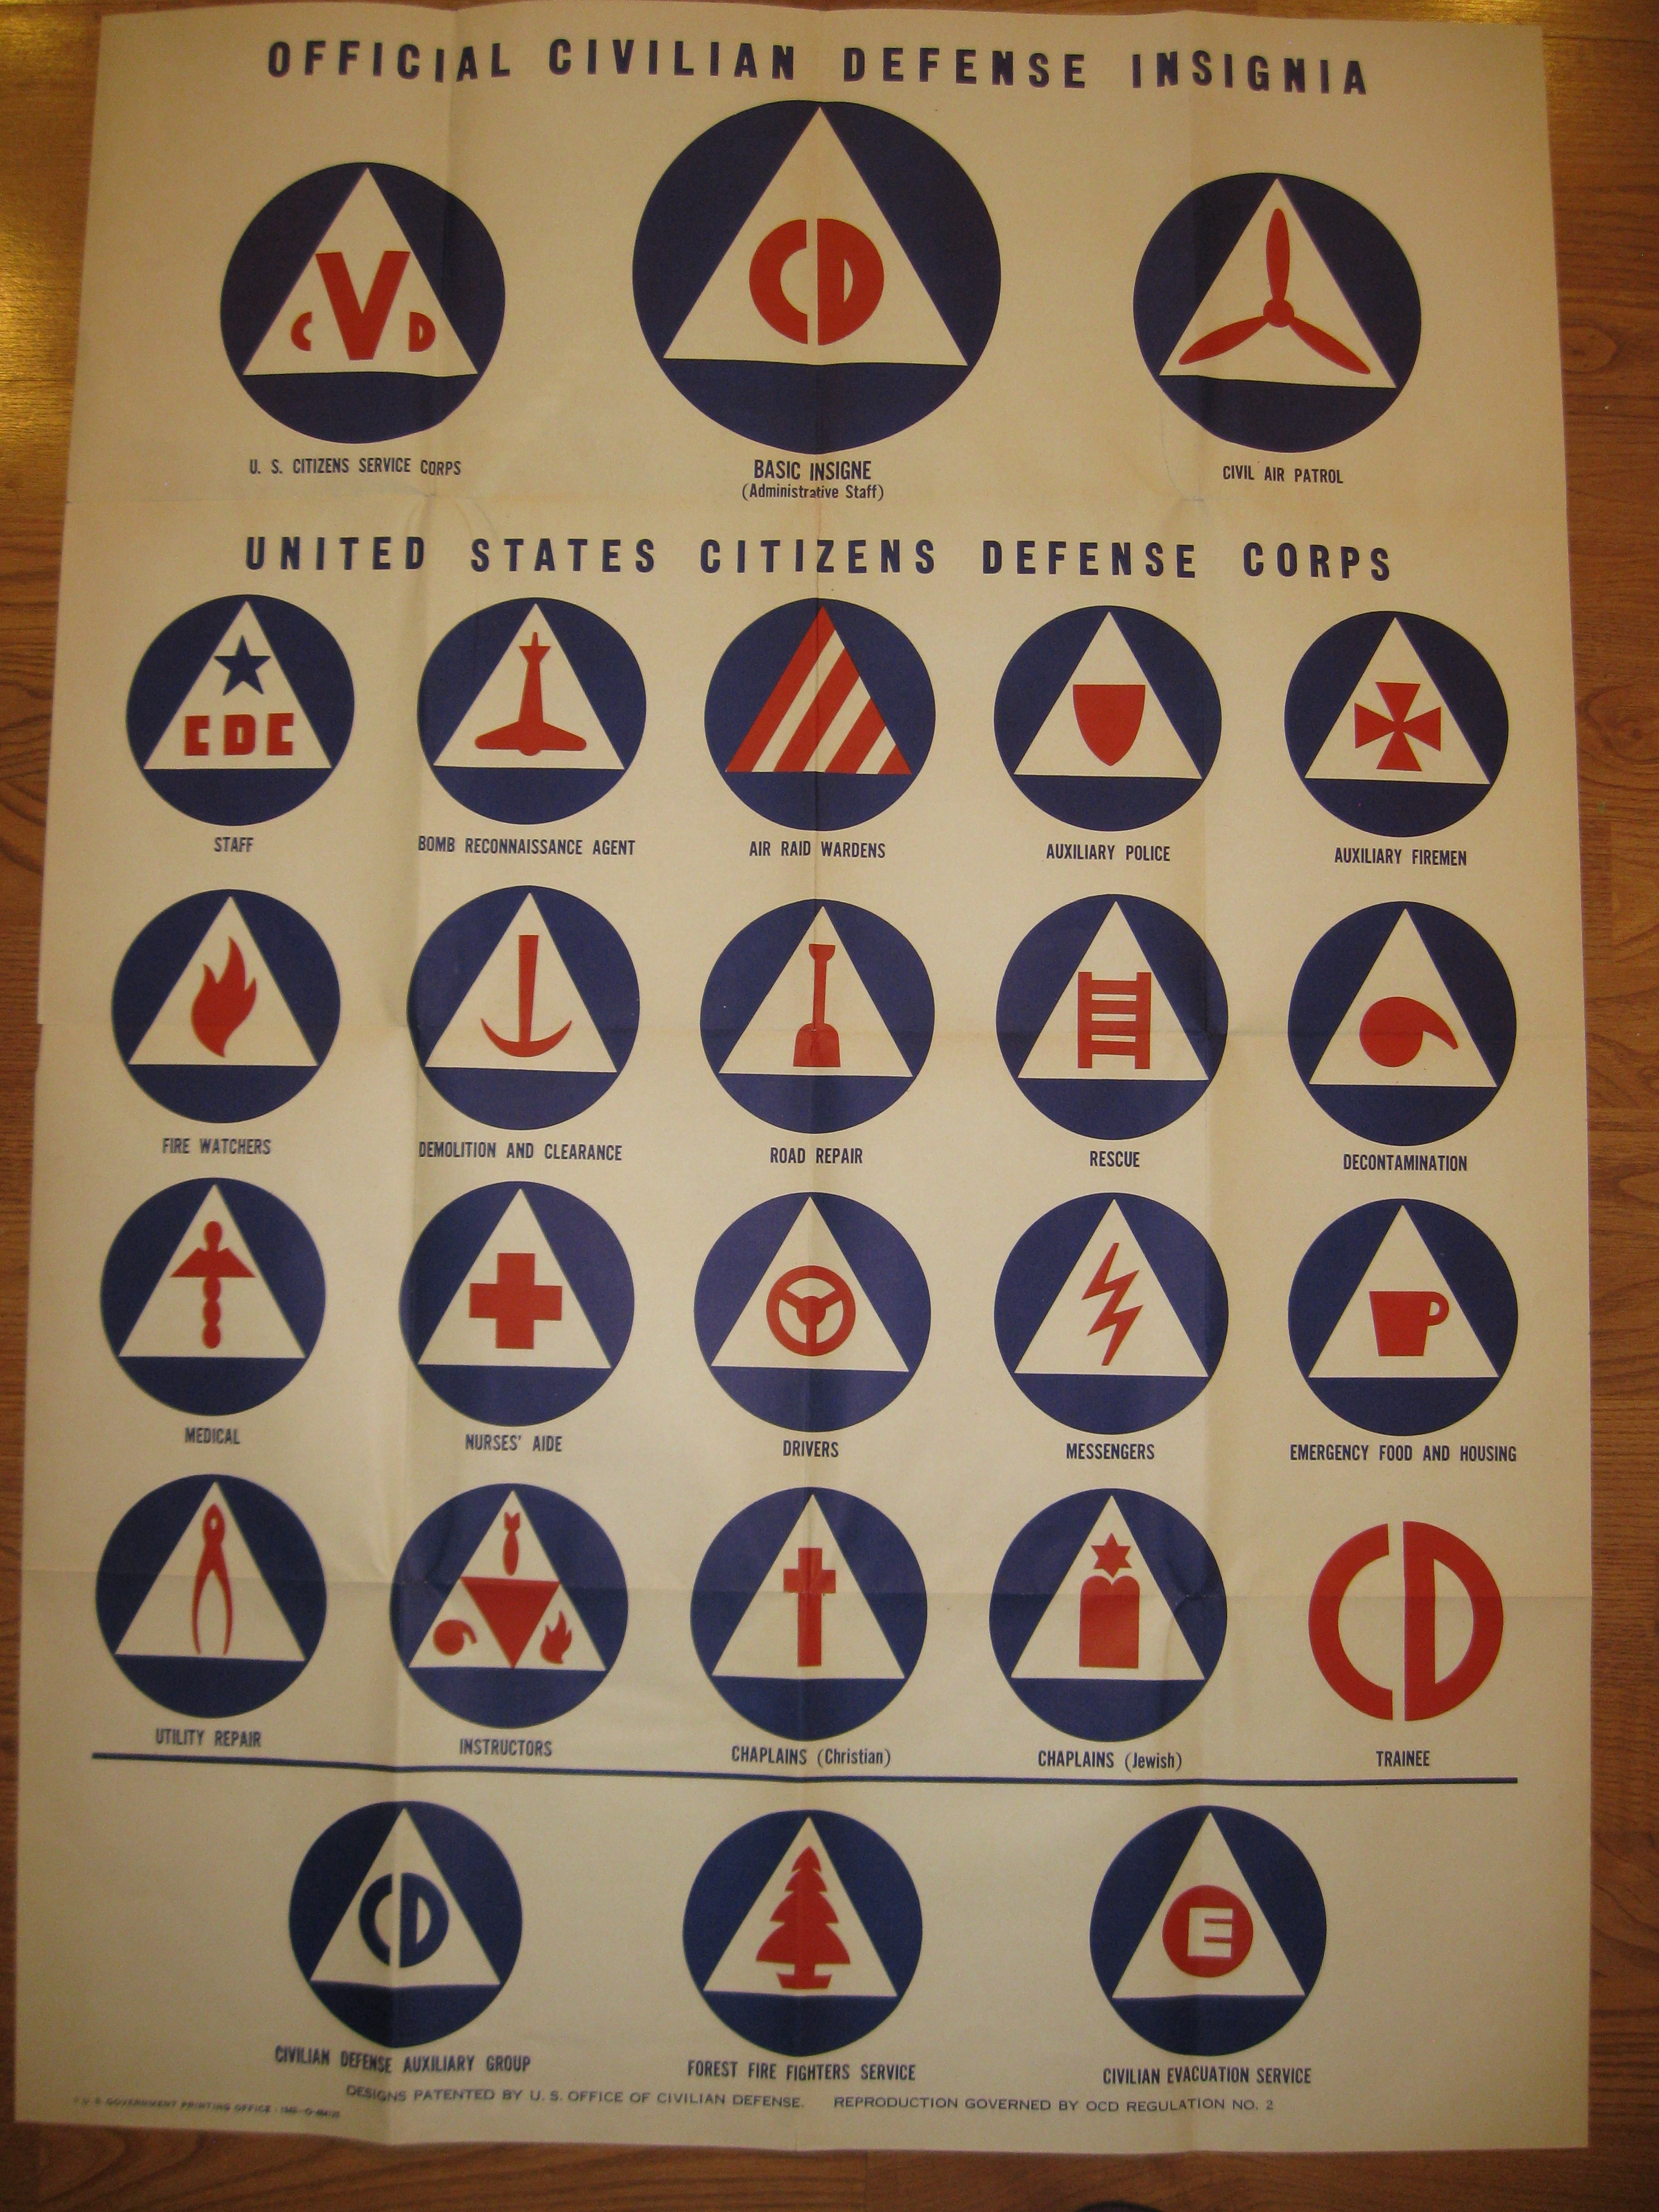 from Roger: a WWII poster of US Citizens Defense Corps insignia